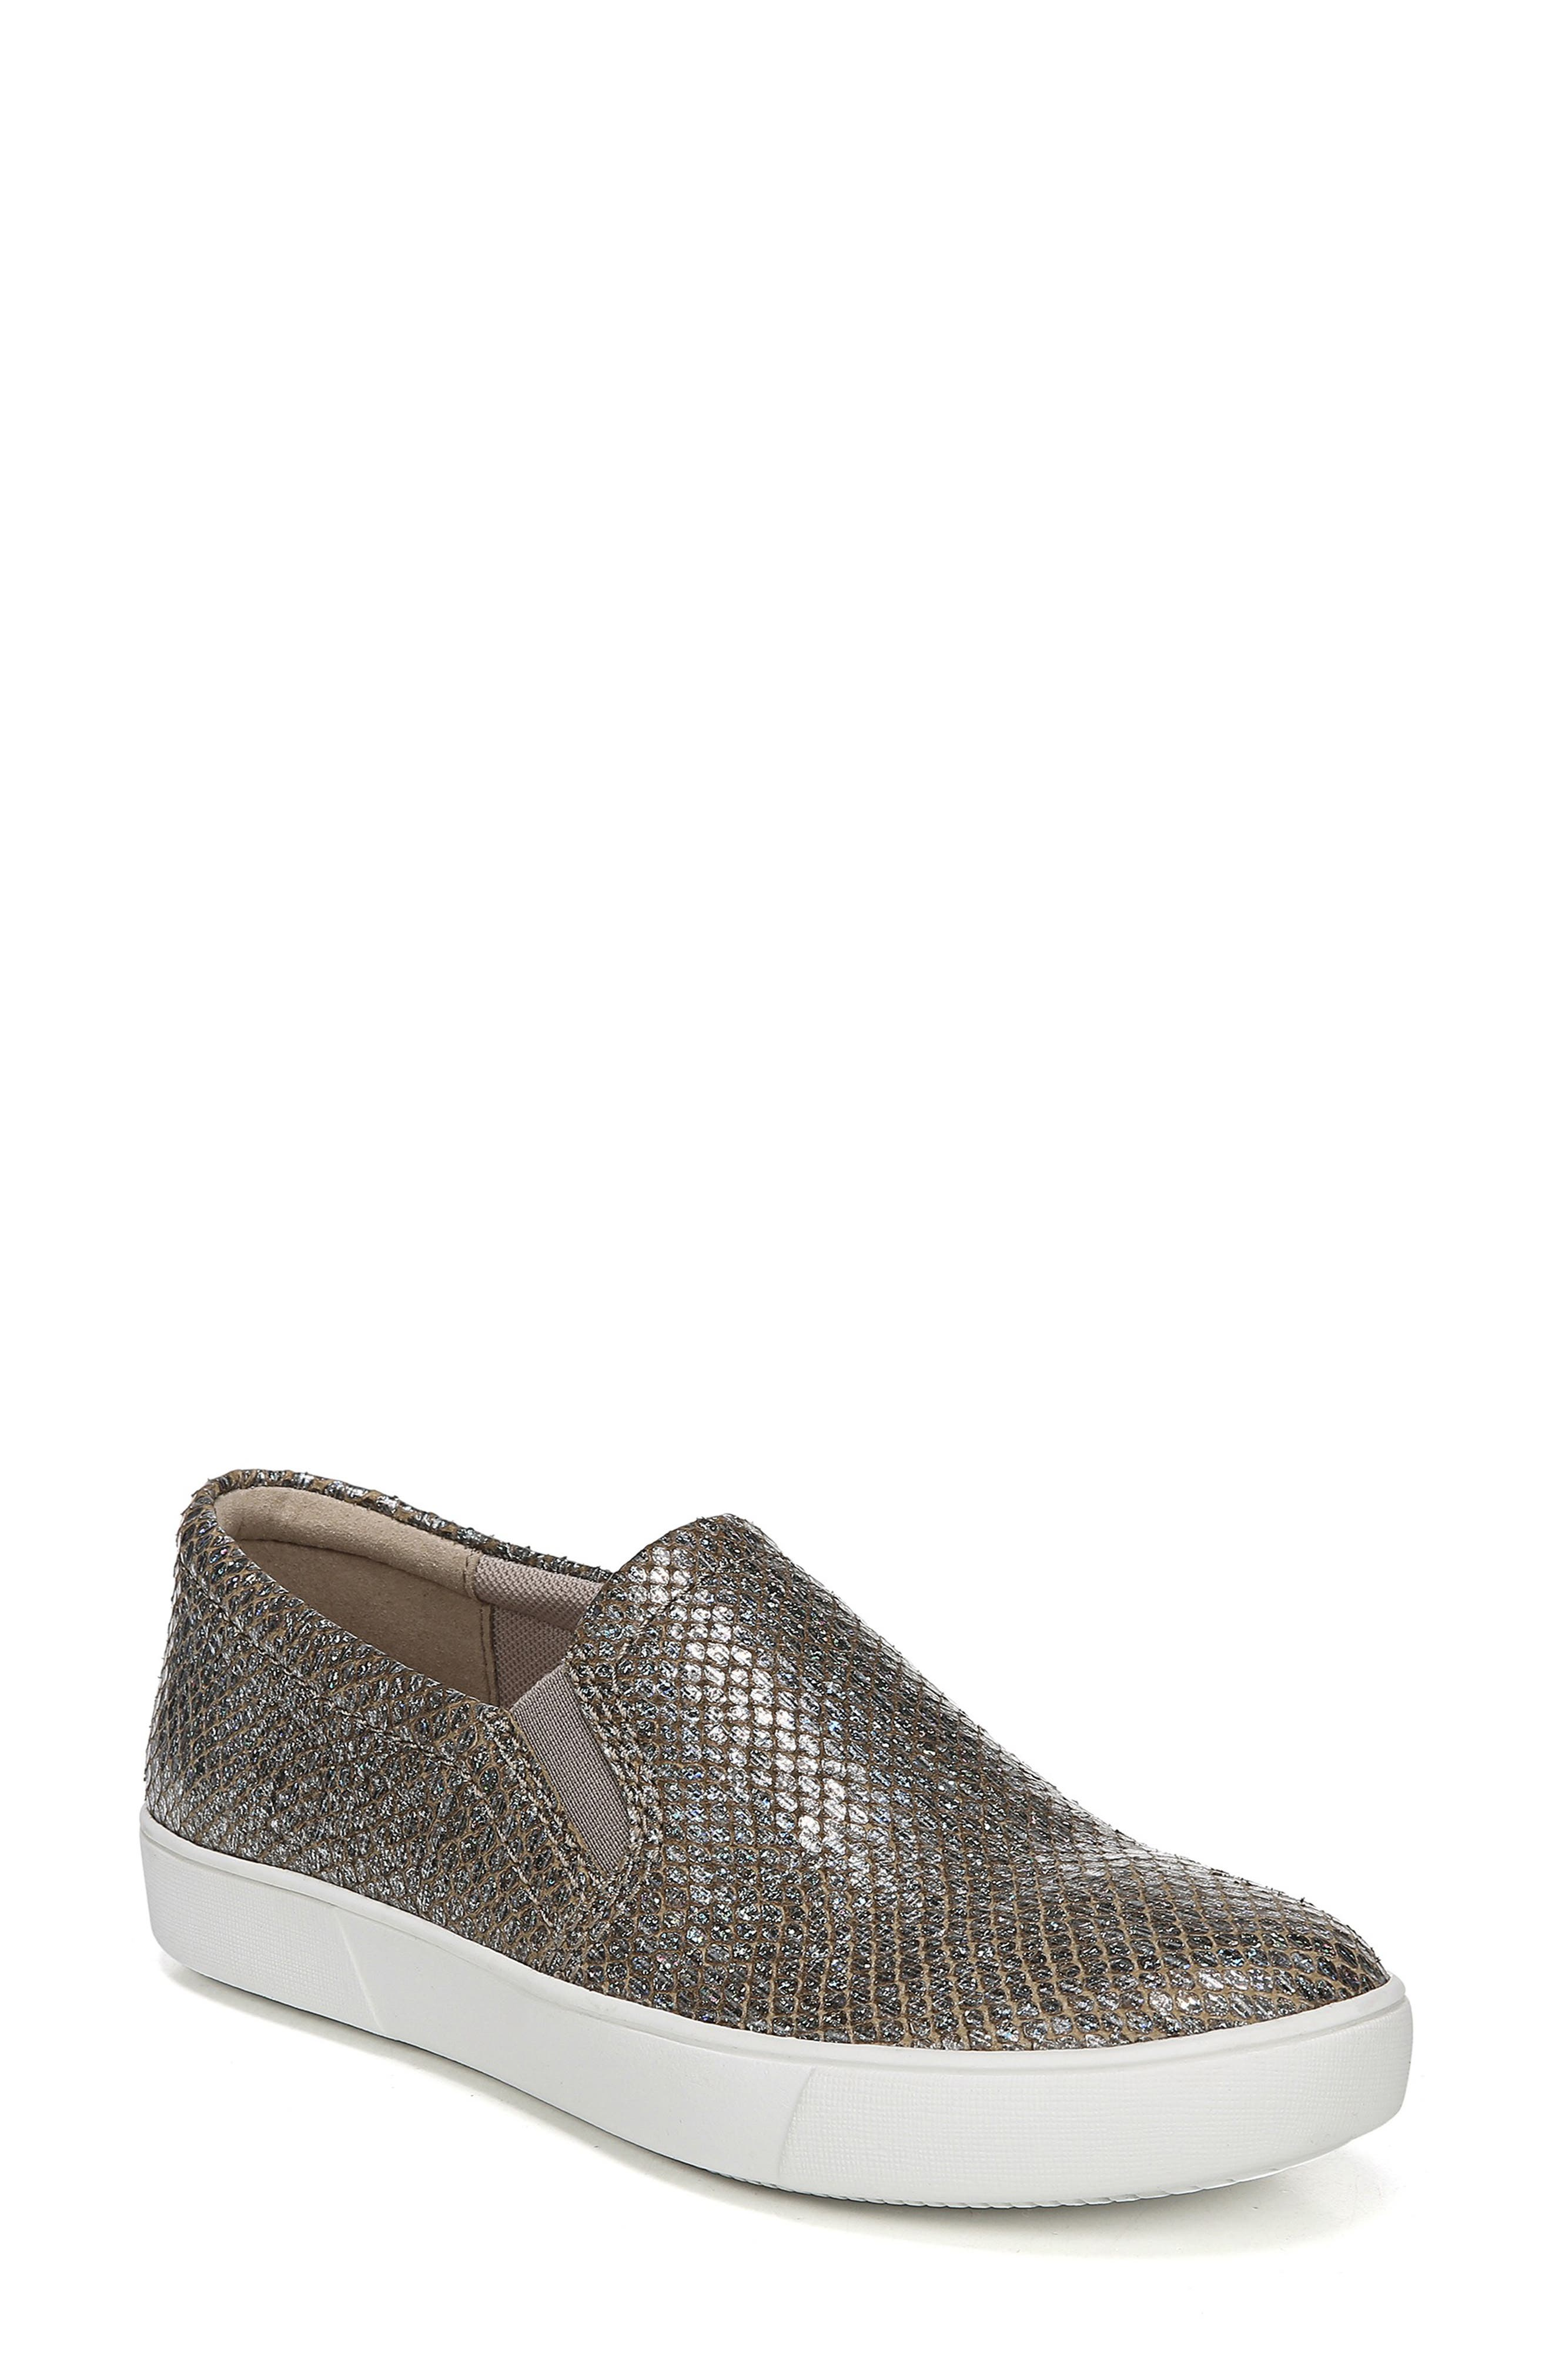 ,                             Marianne Slip-On Sneaker,                             Main thumbnail 1, color,                             PEWTER PRINTED LEATHER